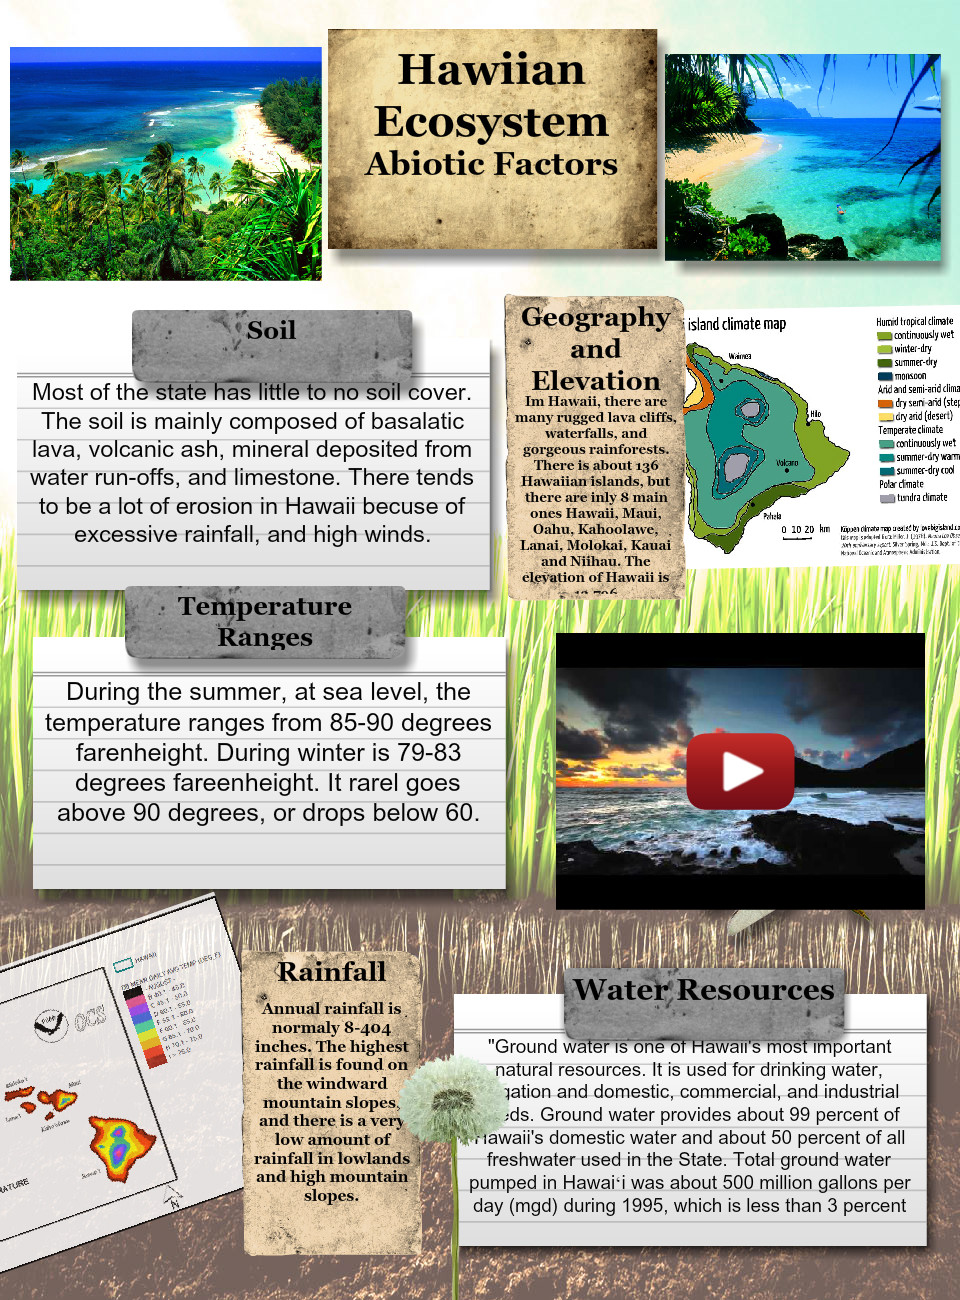 Hawaiian Ecosystem - Abiotic Factors